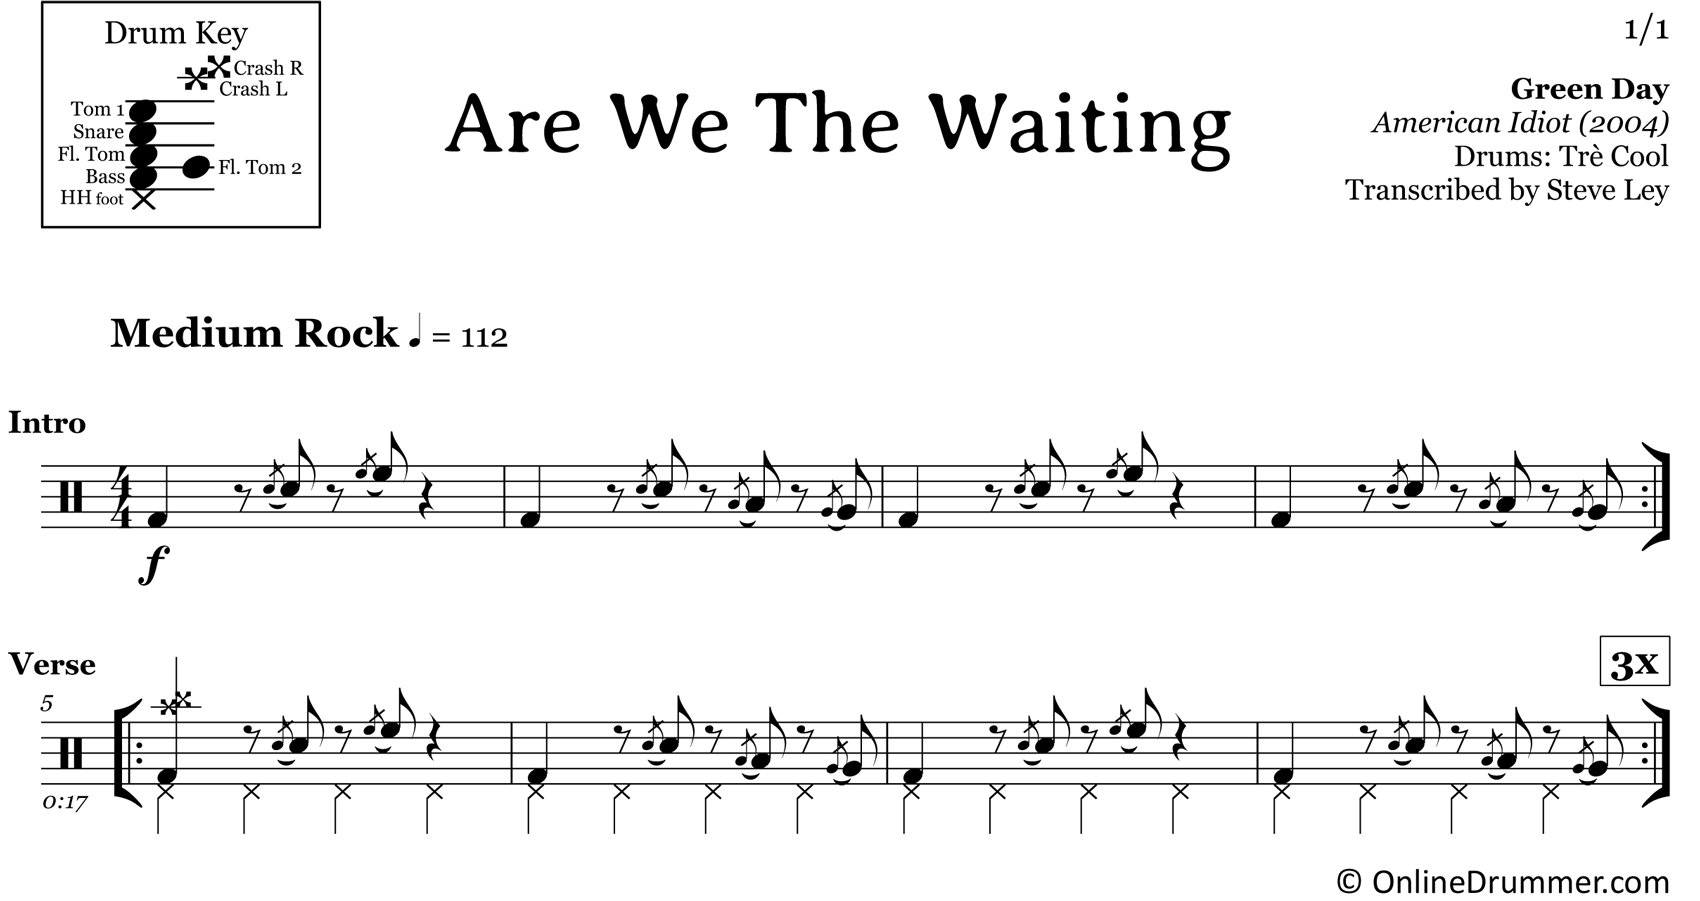 Are We The Waiting - Green Day - Drum Sheet Music